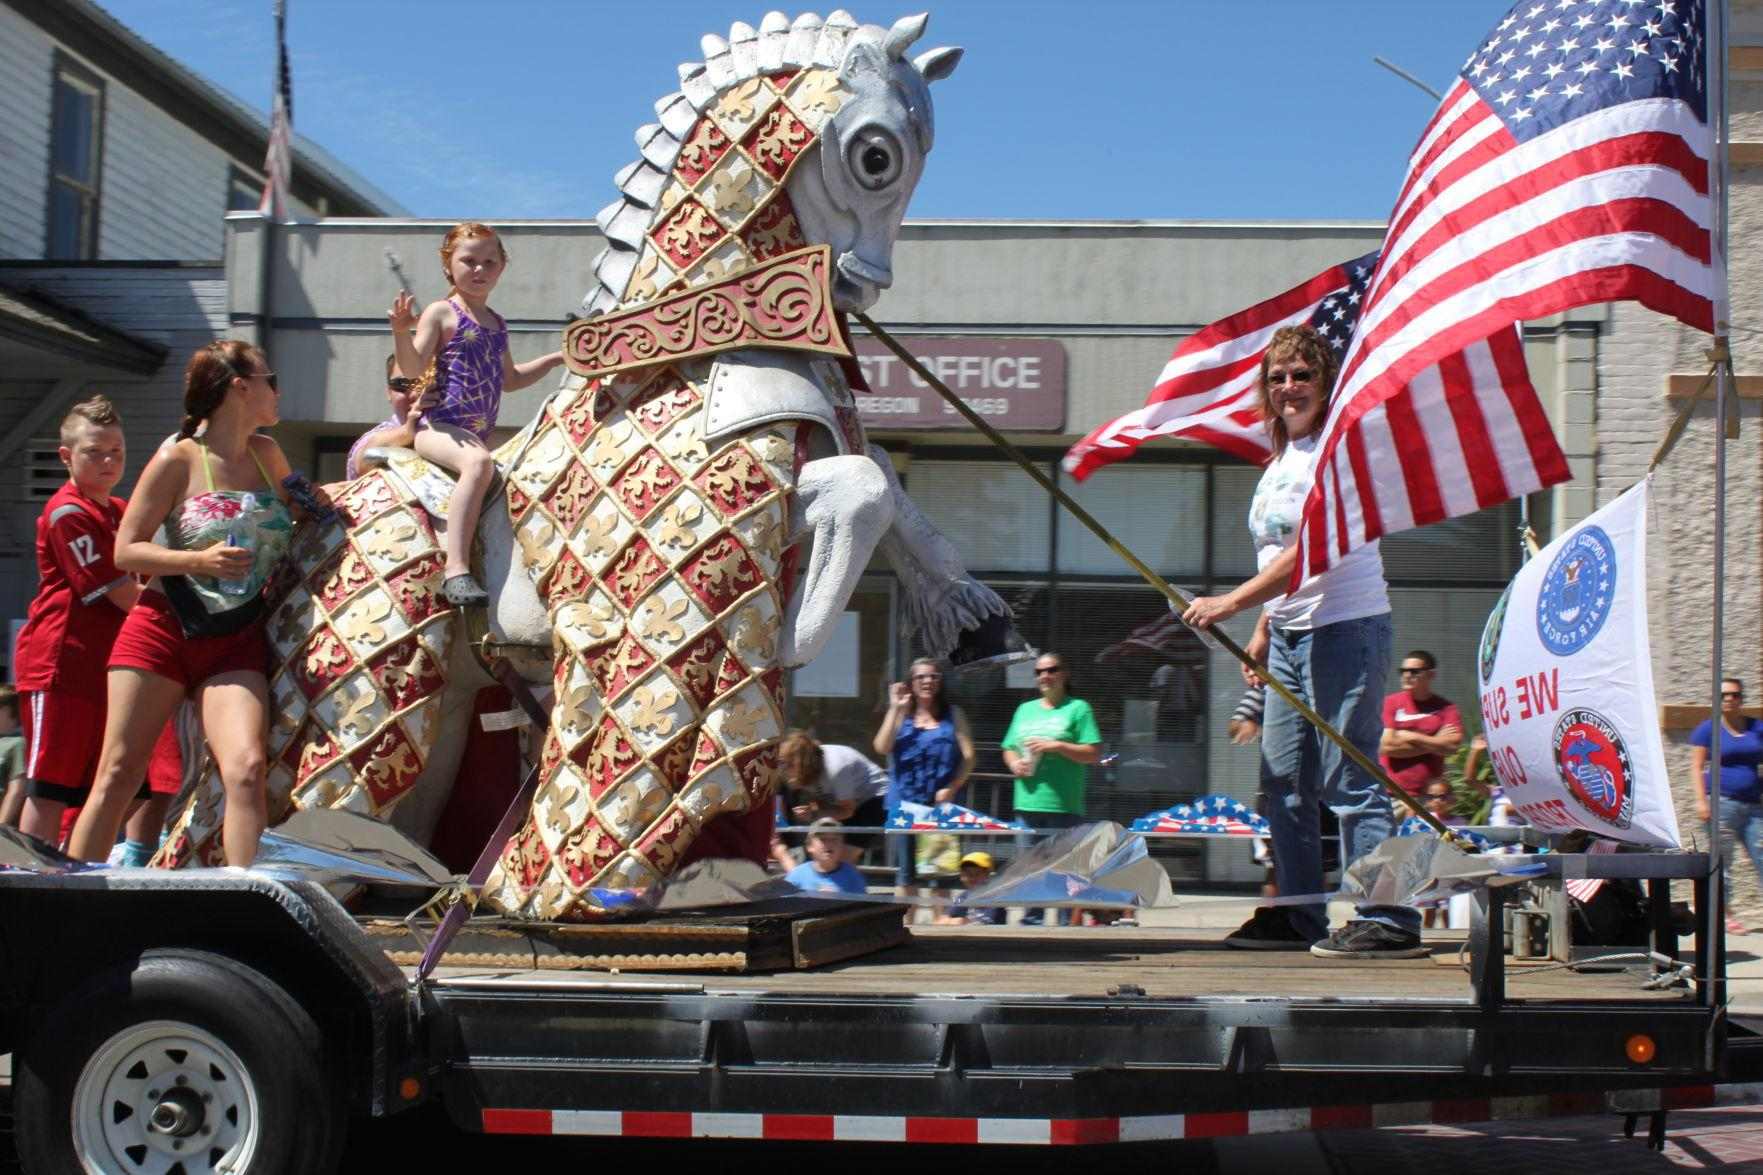 Riddle brings back the Sawdust Jubilee Fourth of July celebration in 2016